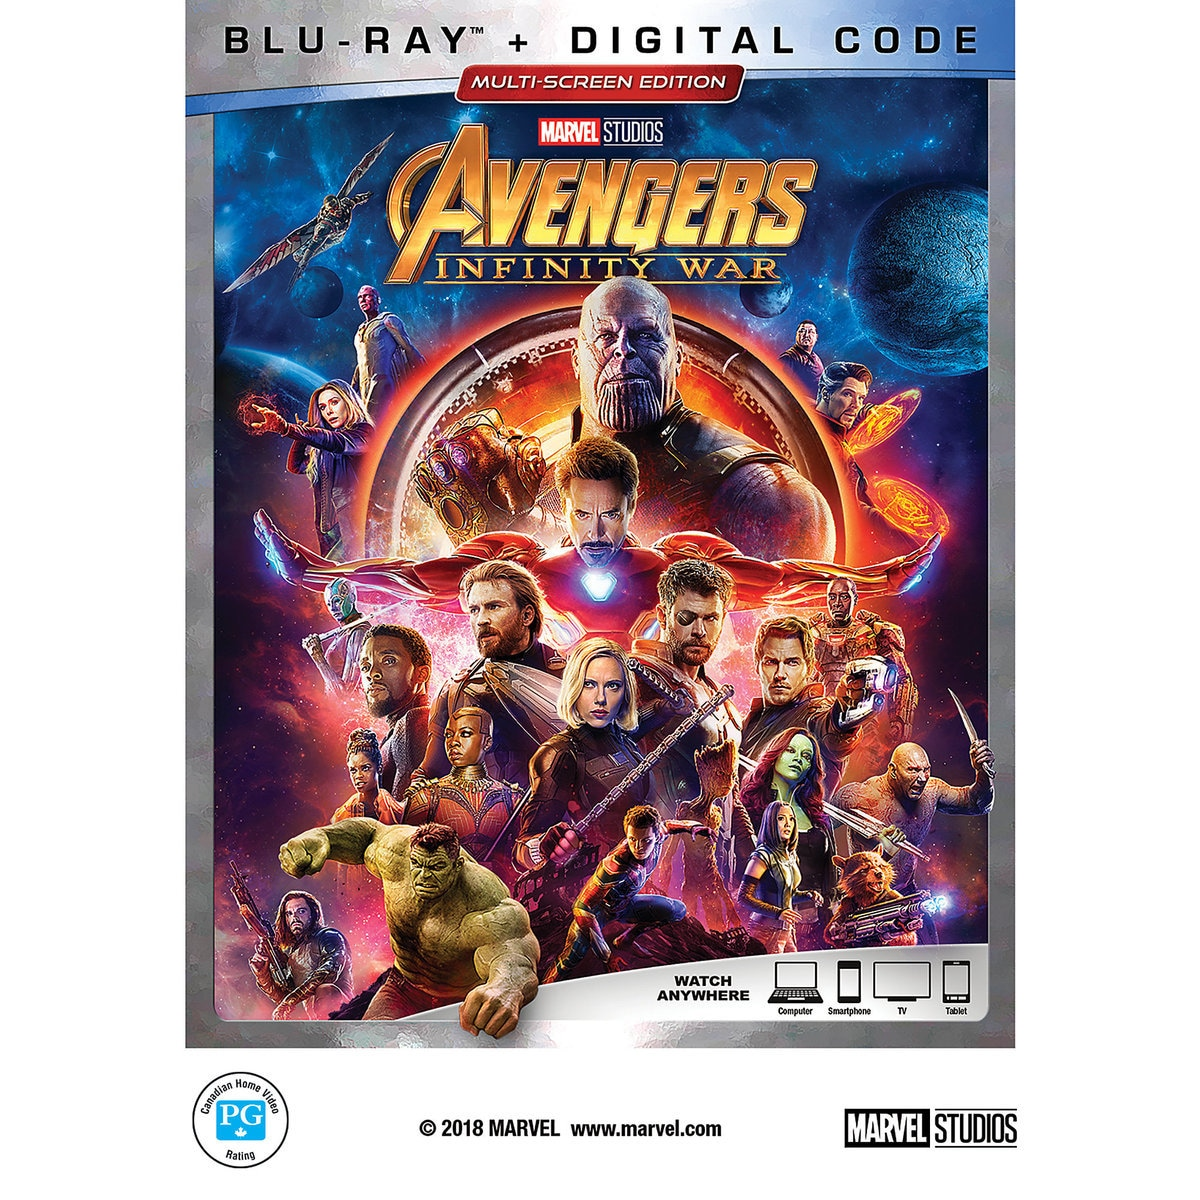 Product Image of Marvel's Avengers: Infinity War Blu-ray Multi-Screen Edition - with FREE Lithograph Set Offer - Pre-Order # 1